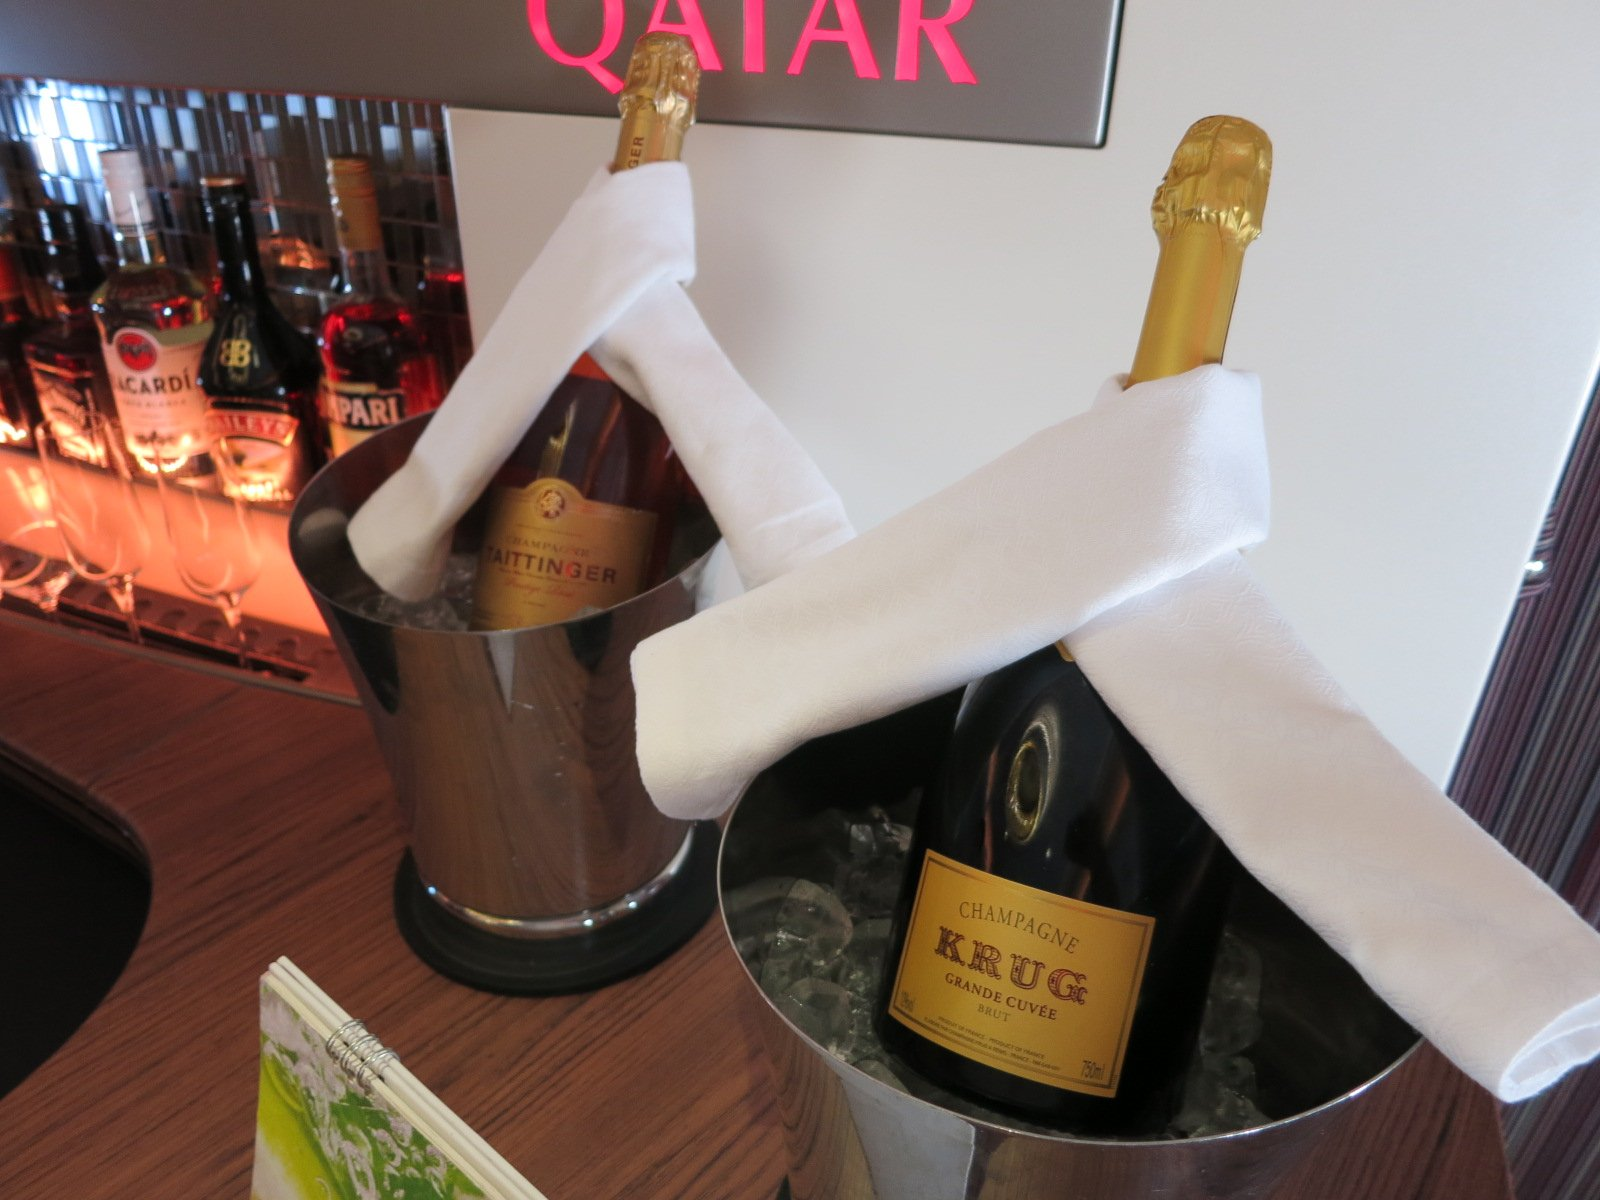 1633788728_0_Should-Airlines-Offer-Paid-Wine-Choices-In-First-Class